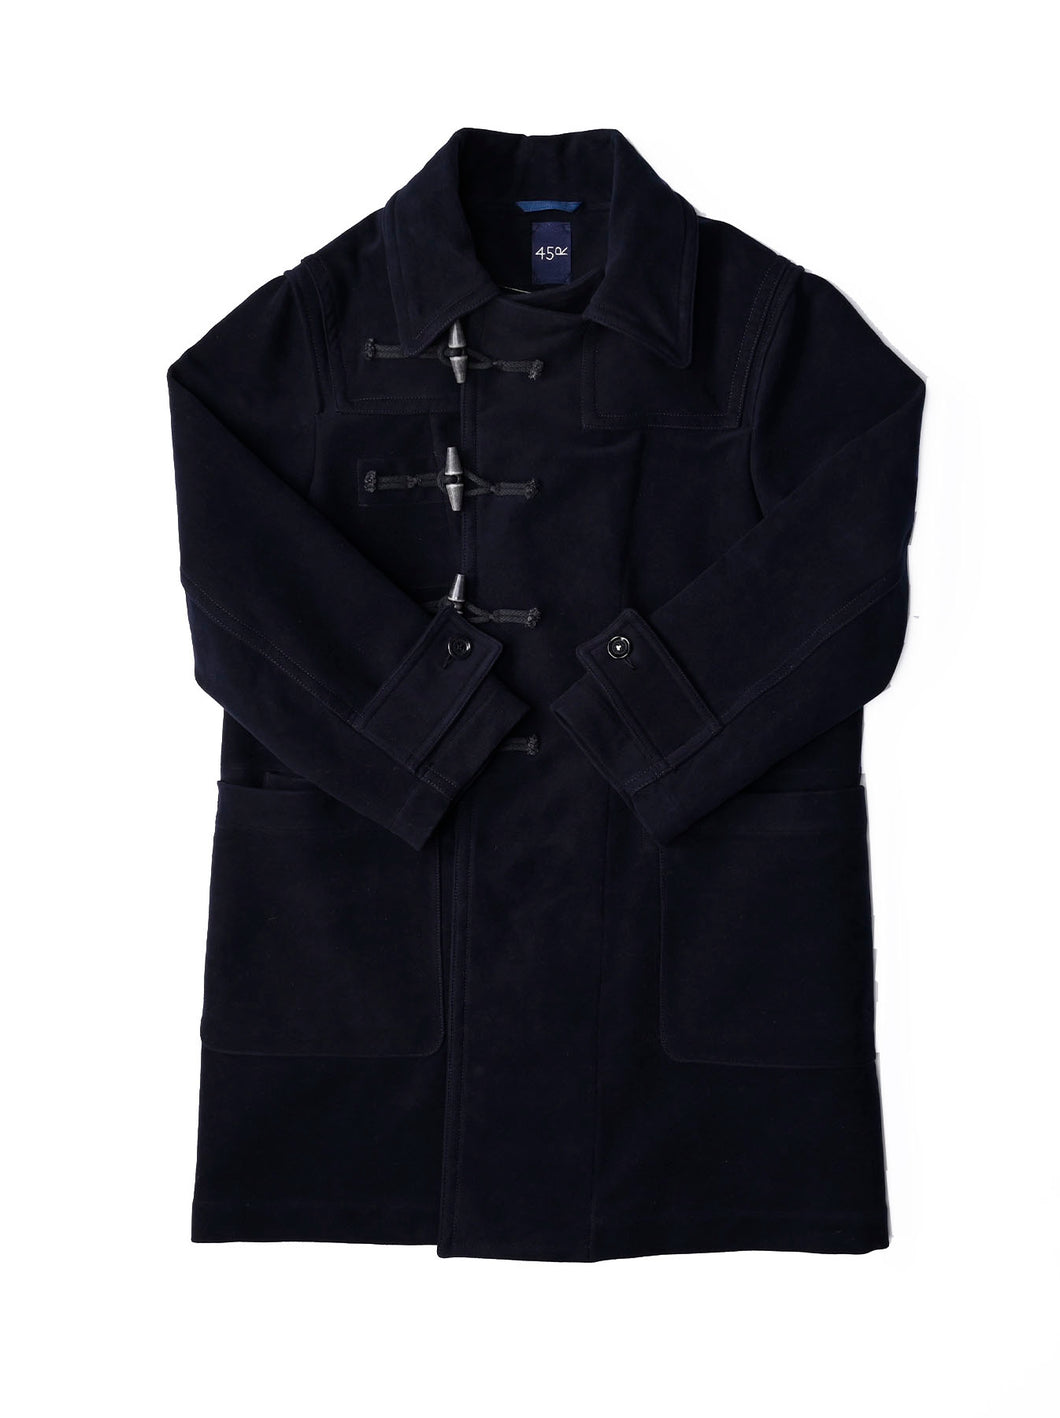 Atsu Atsu Cotton Flannel Hayama Duffle Coat in navy